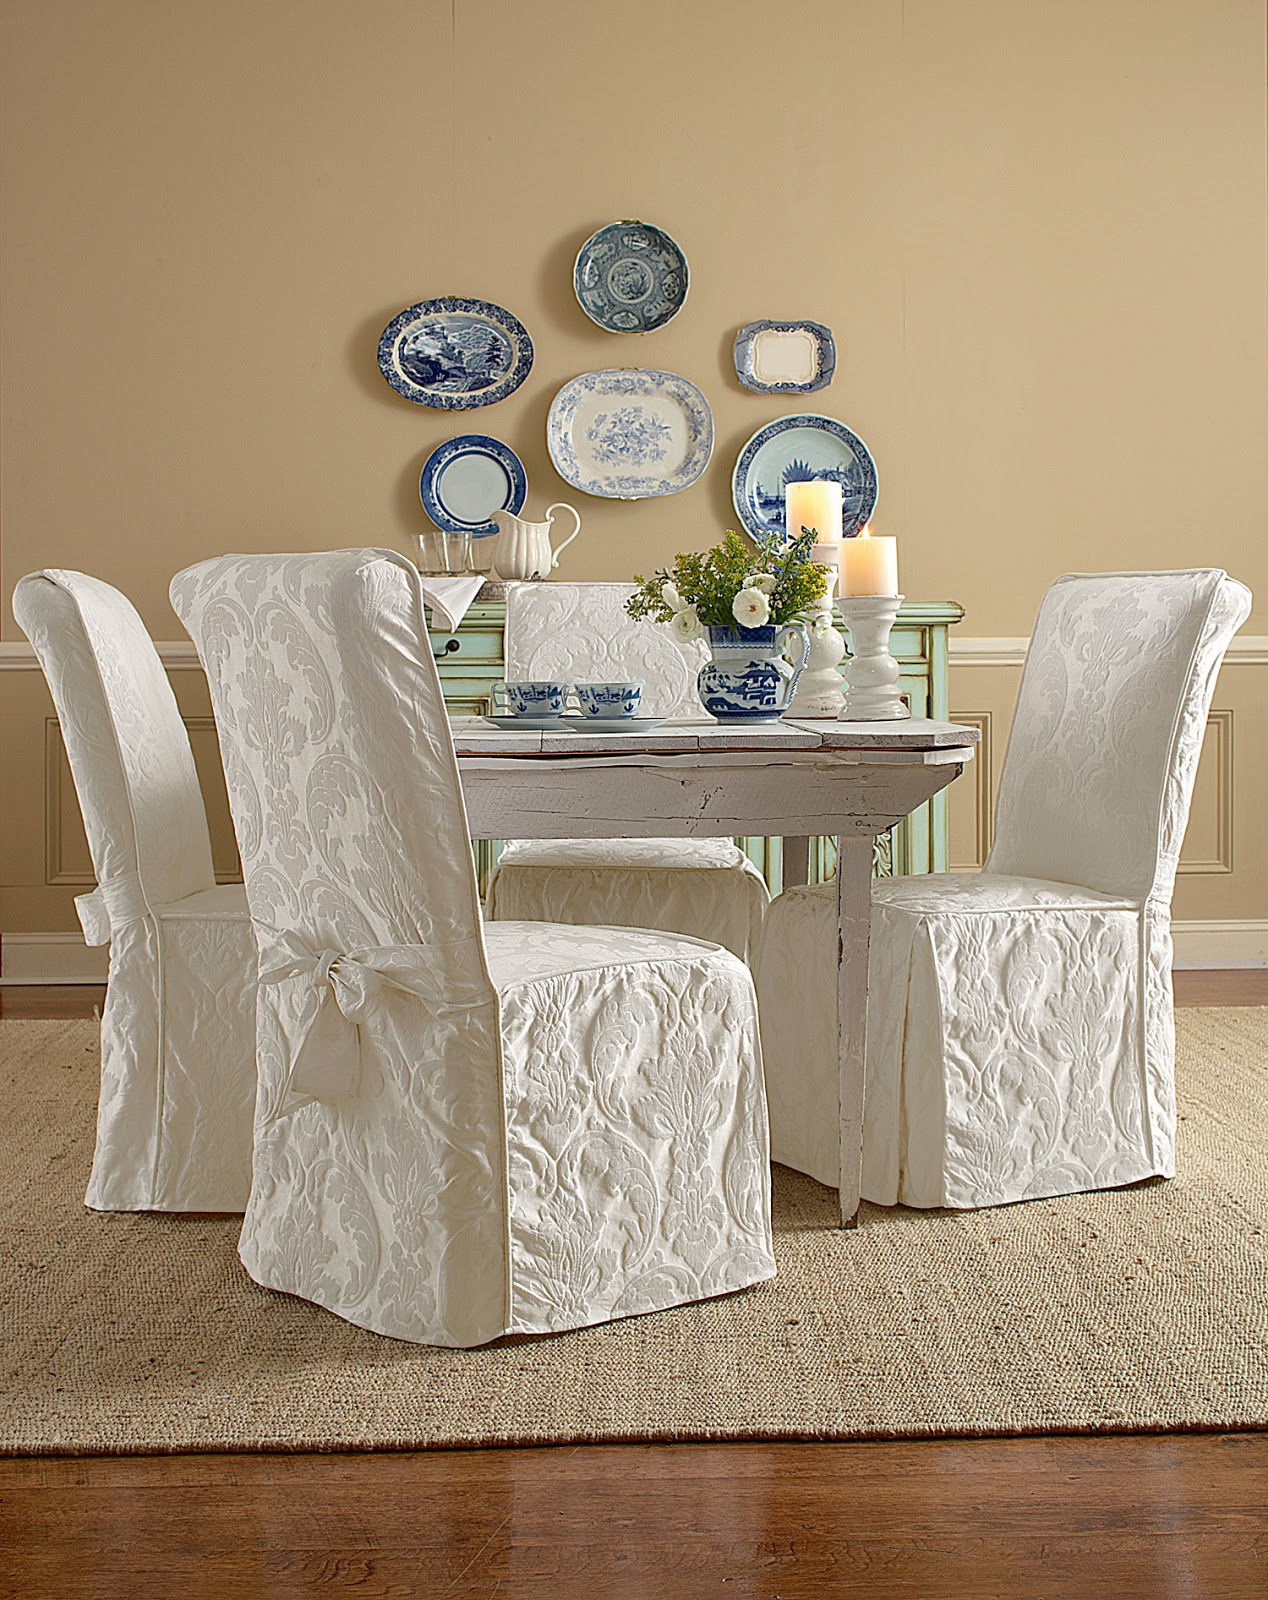 Sure Fit Slipcovers Super Easy Way To Pretty Up Those Dining